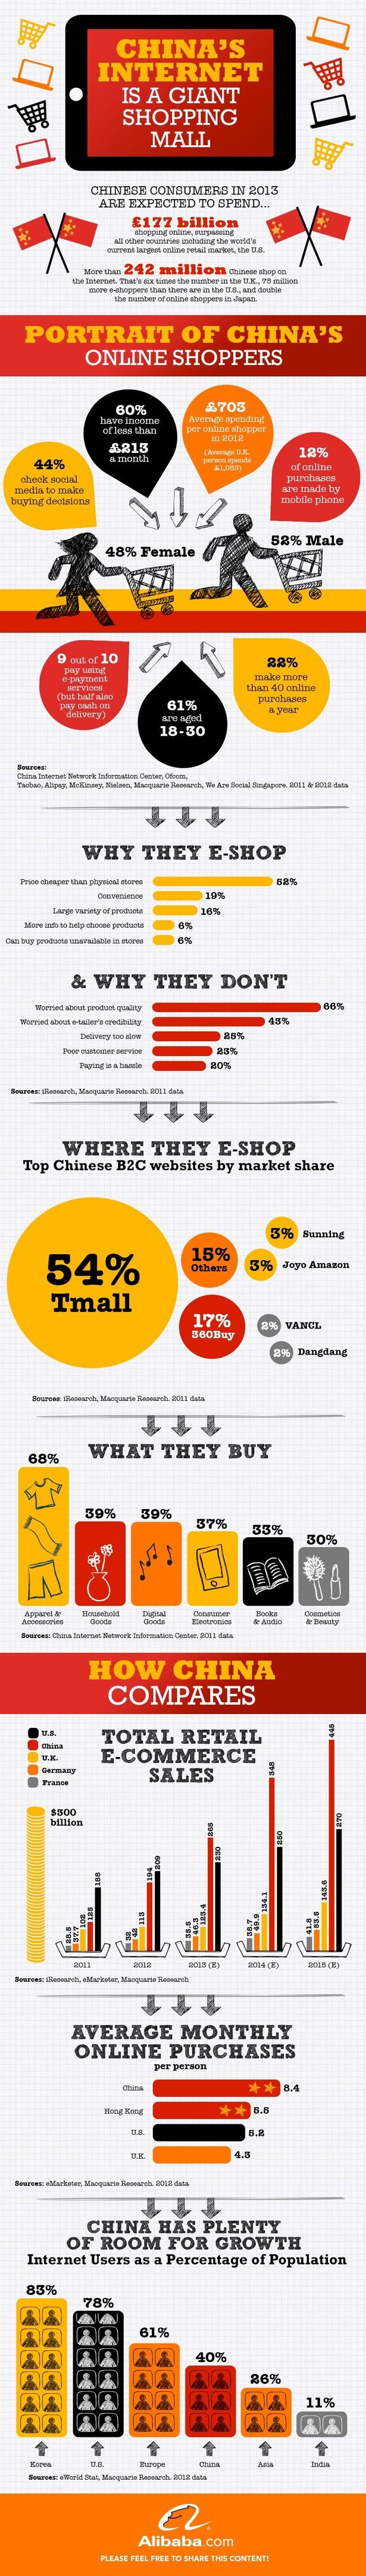 The state of ecommerce in China